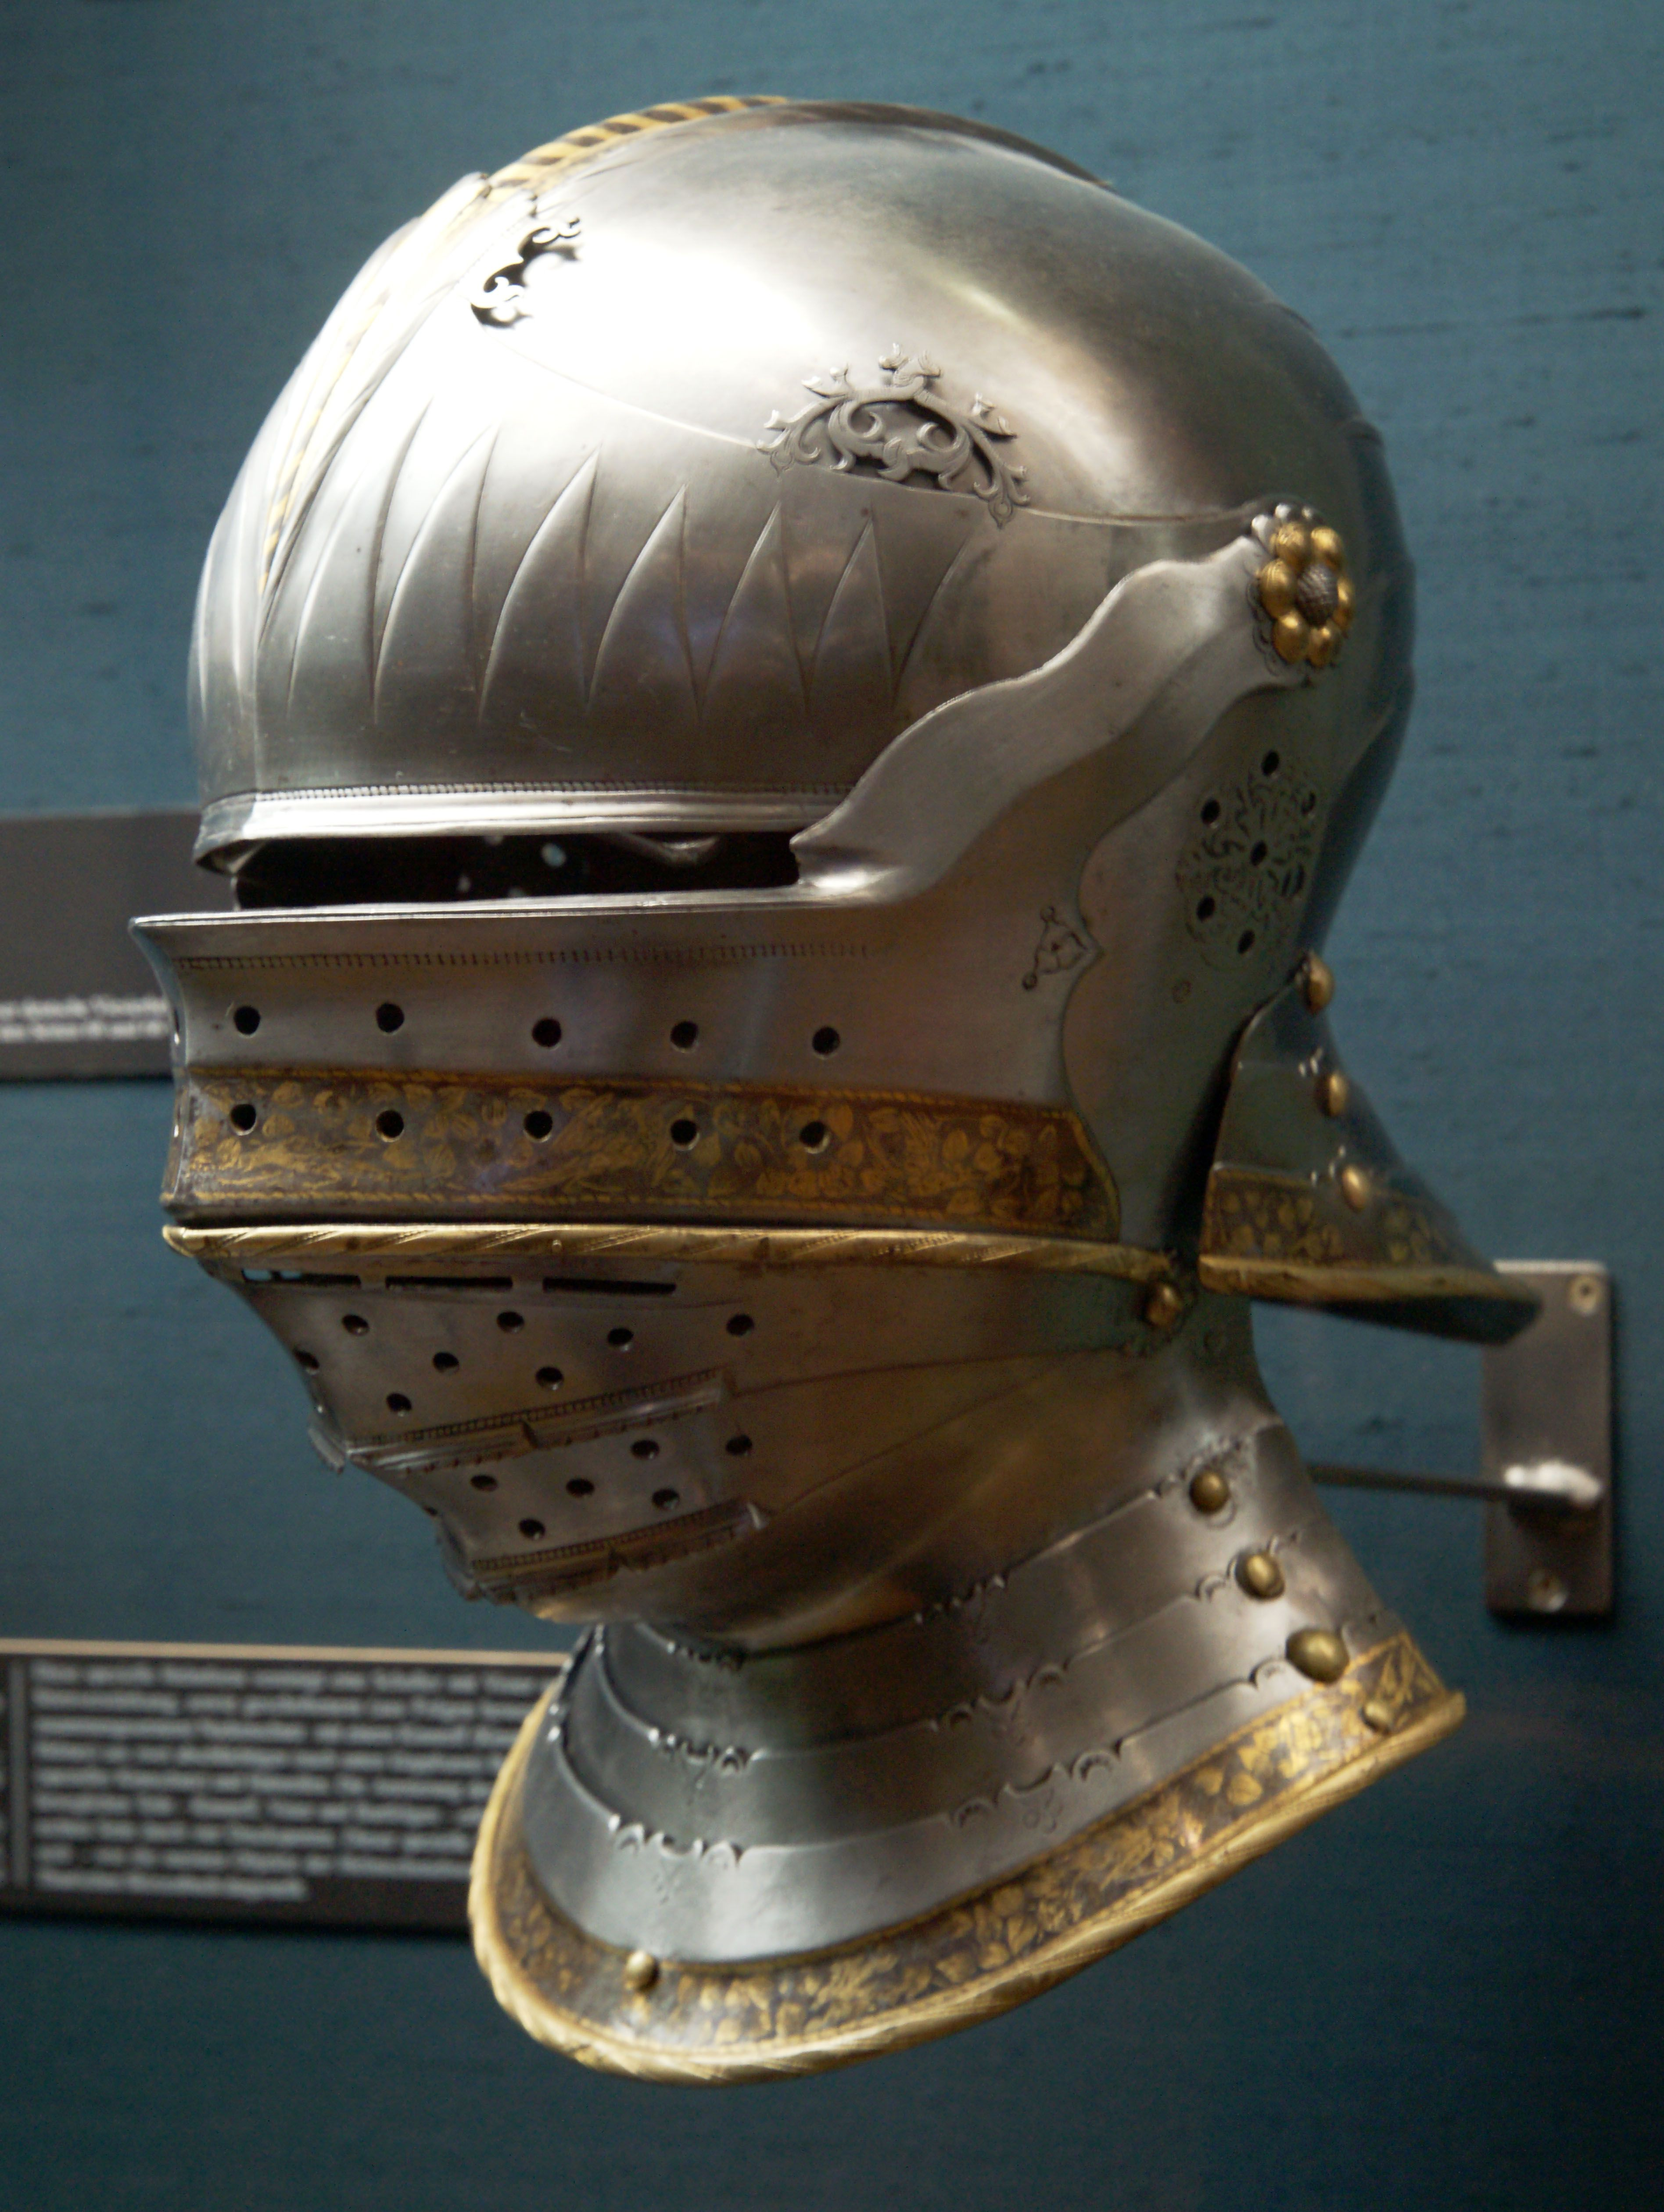 Medieval Helmets for Re-enactment - Wulflund Armoury - wulflund.com